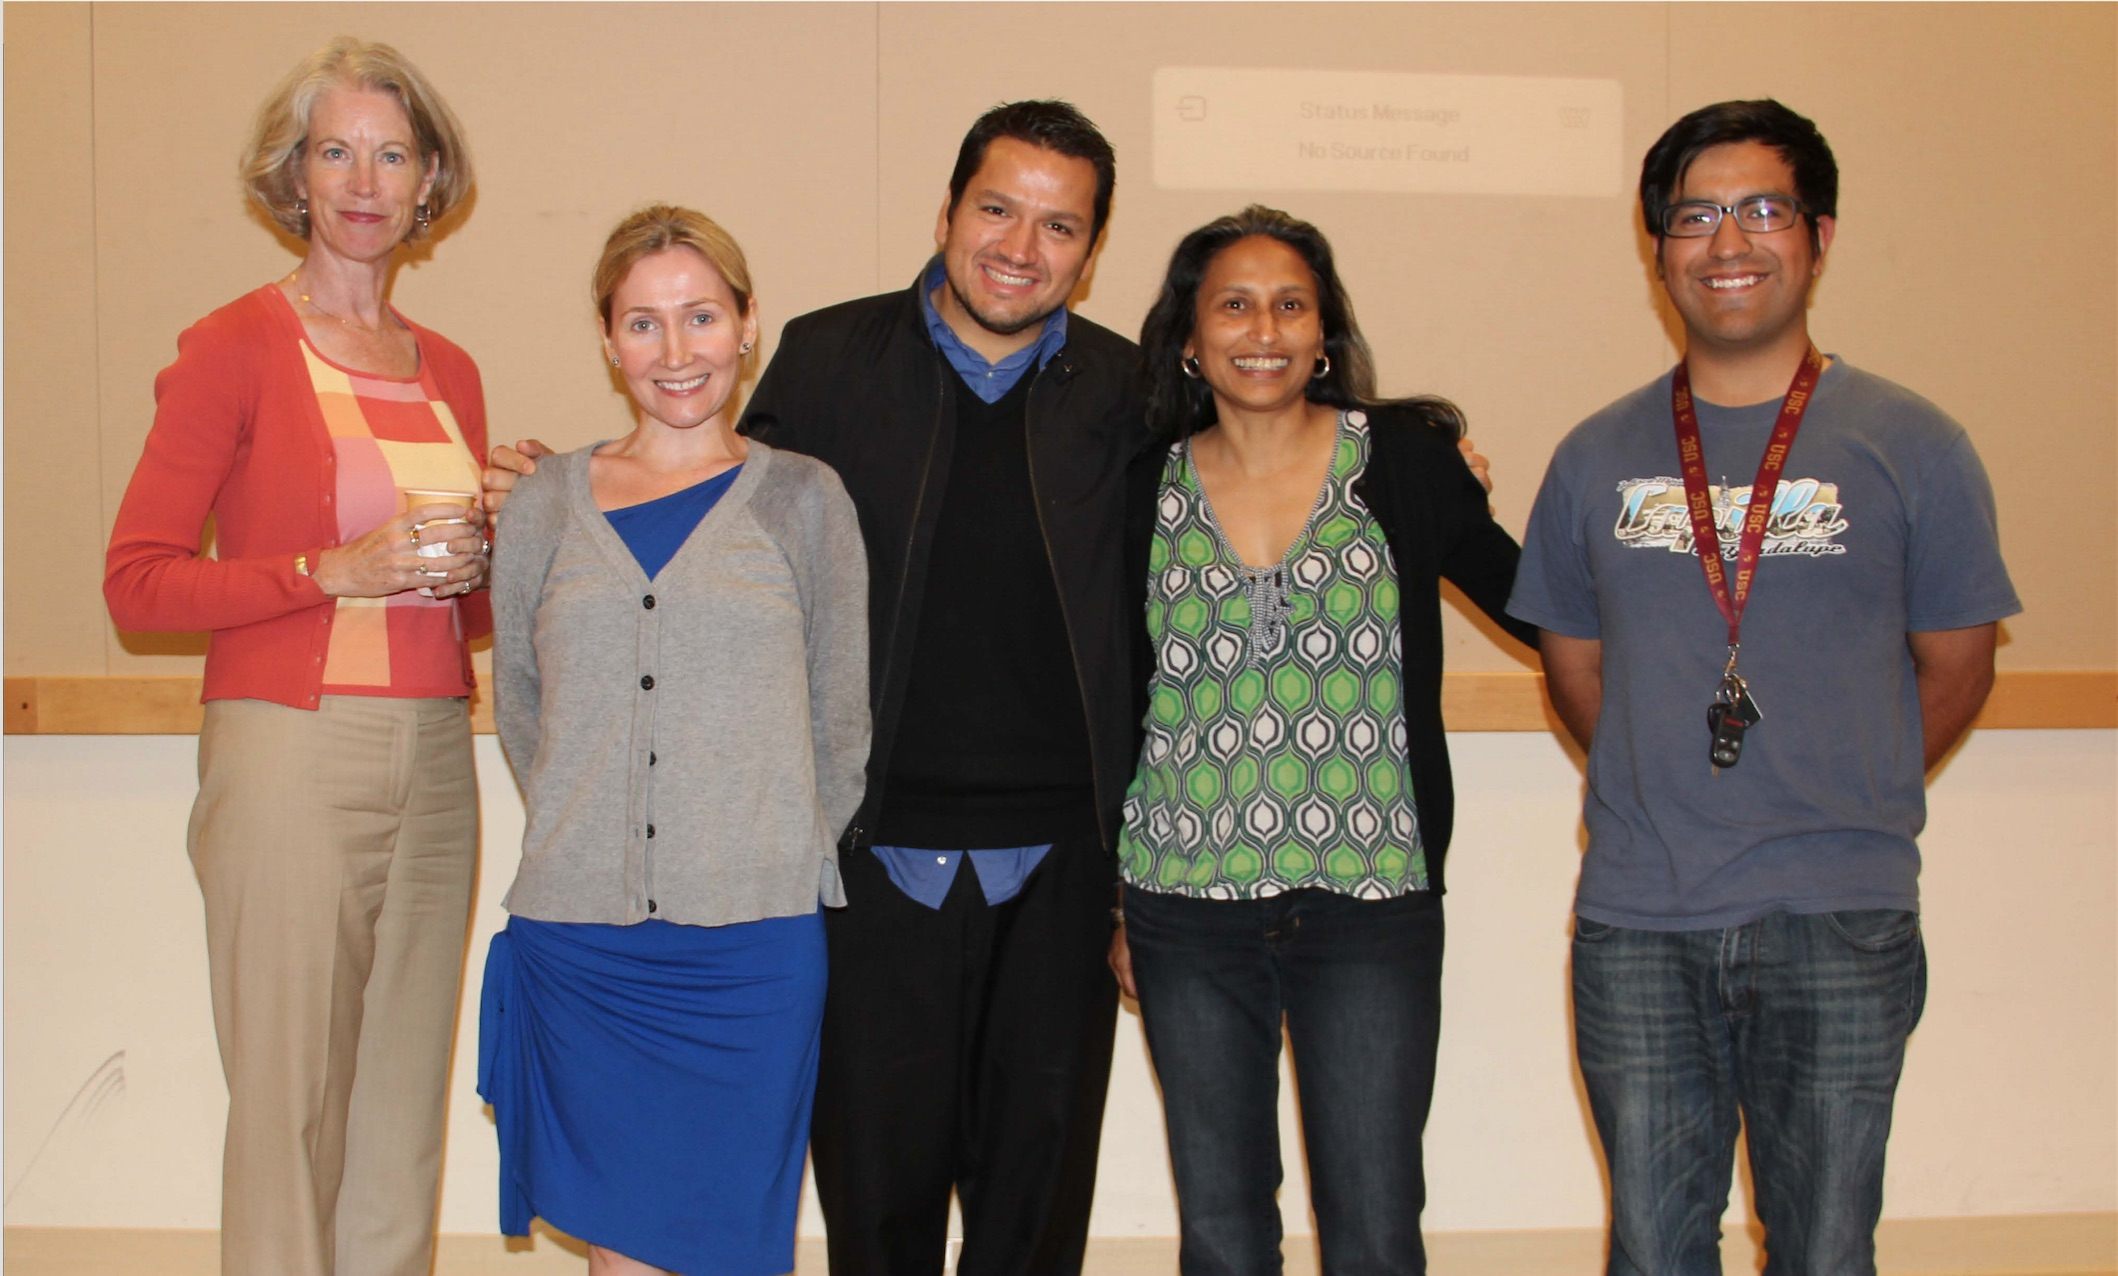 Members of the TESOL Society Student Organization